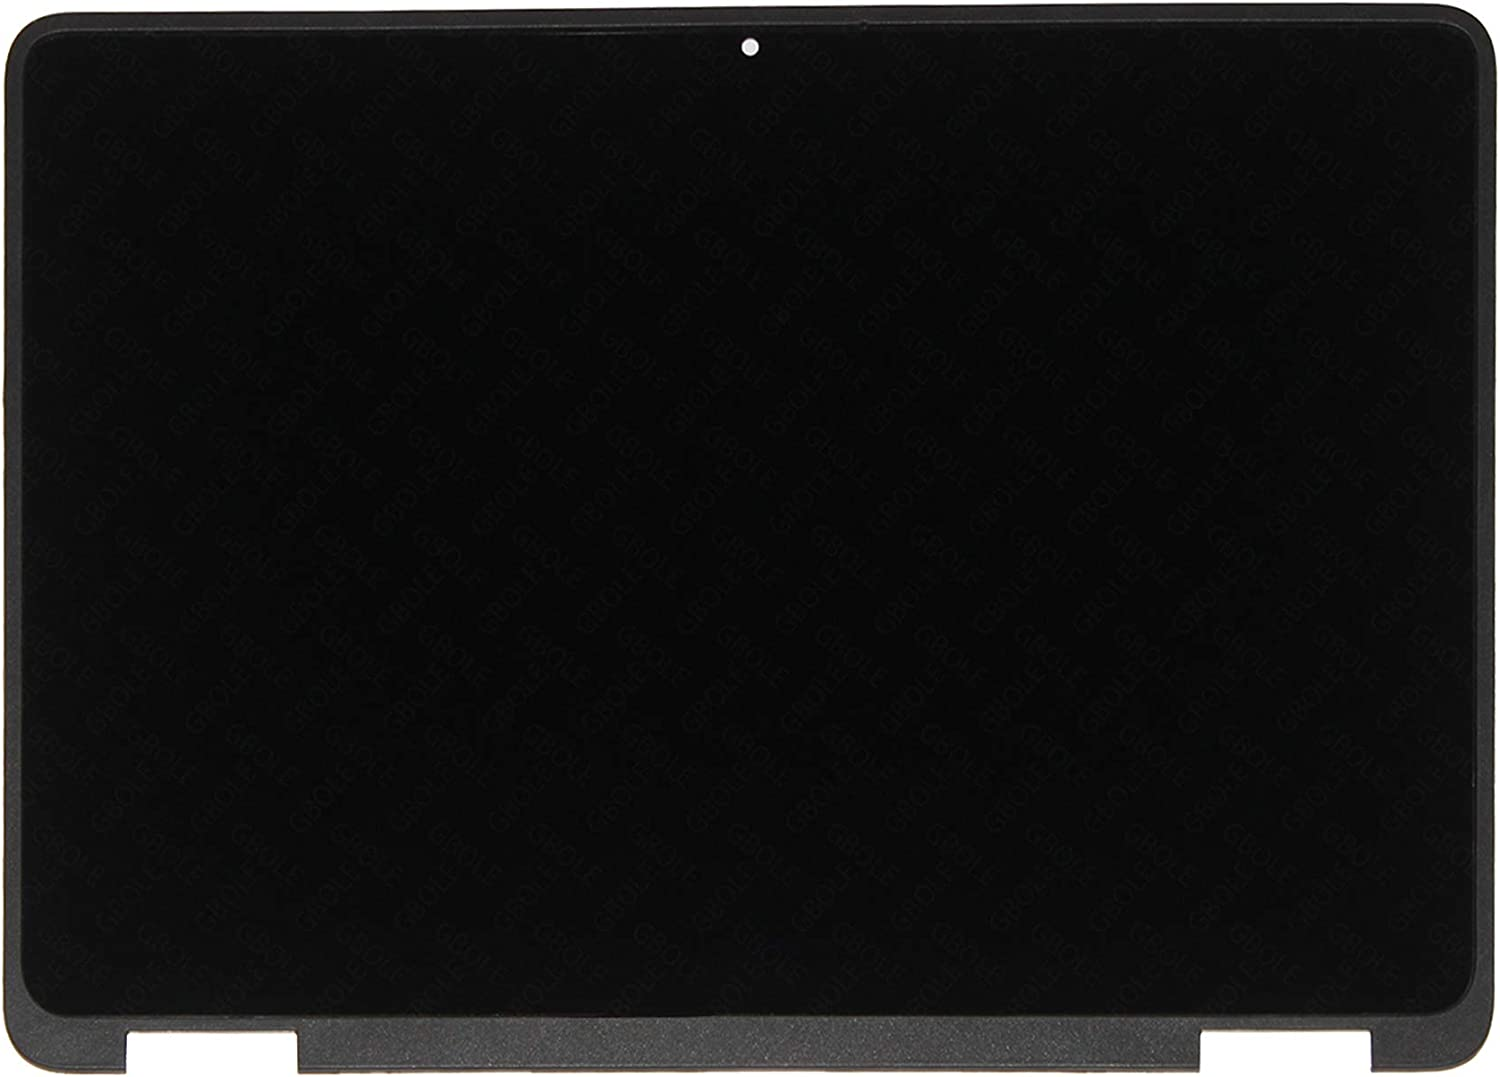 GBOLE Replacement for Dell Chromebook 11 3100 2 in 1 LCD Touch Screen with Bezel Digitizer Assembly 9MH3J 11.6 inch HD 1366x768, (NO Touch Stylus Function)